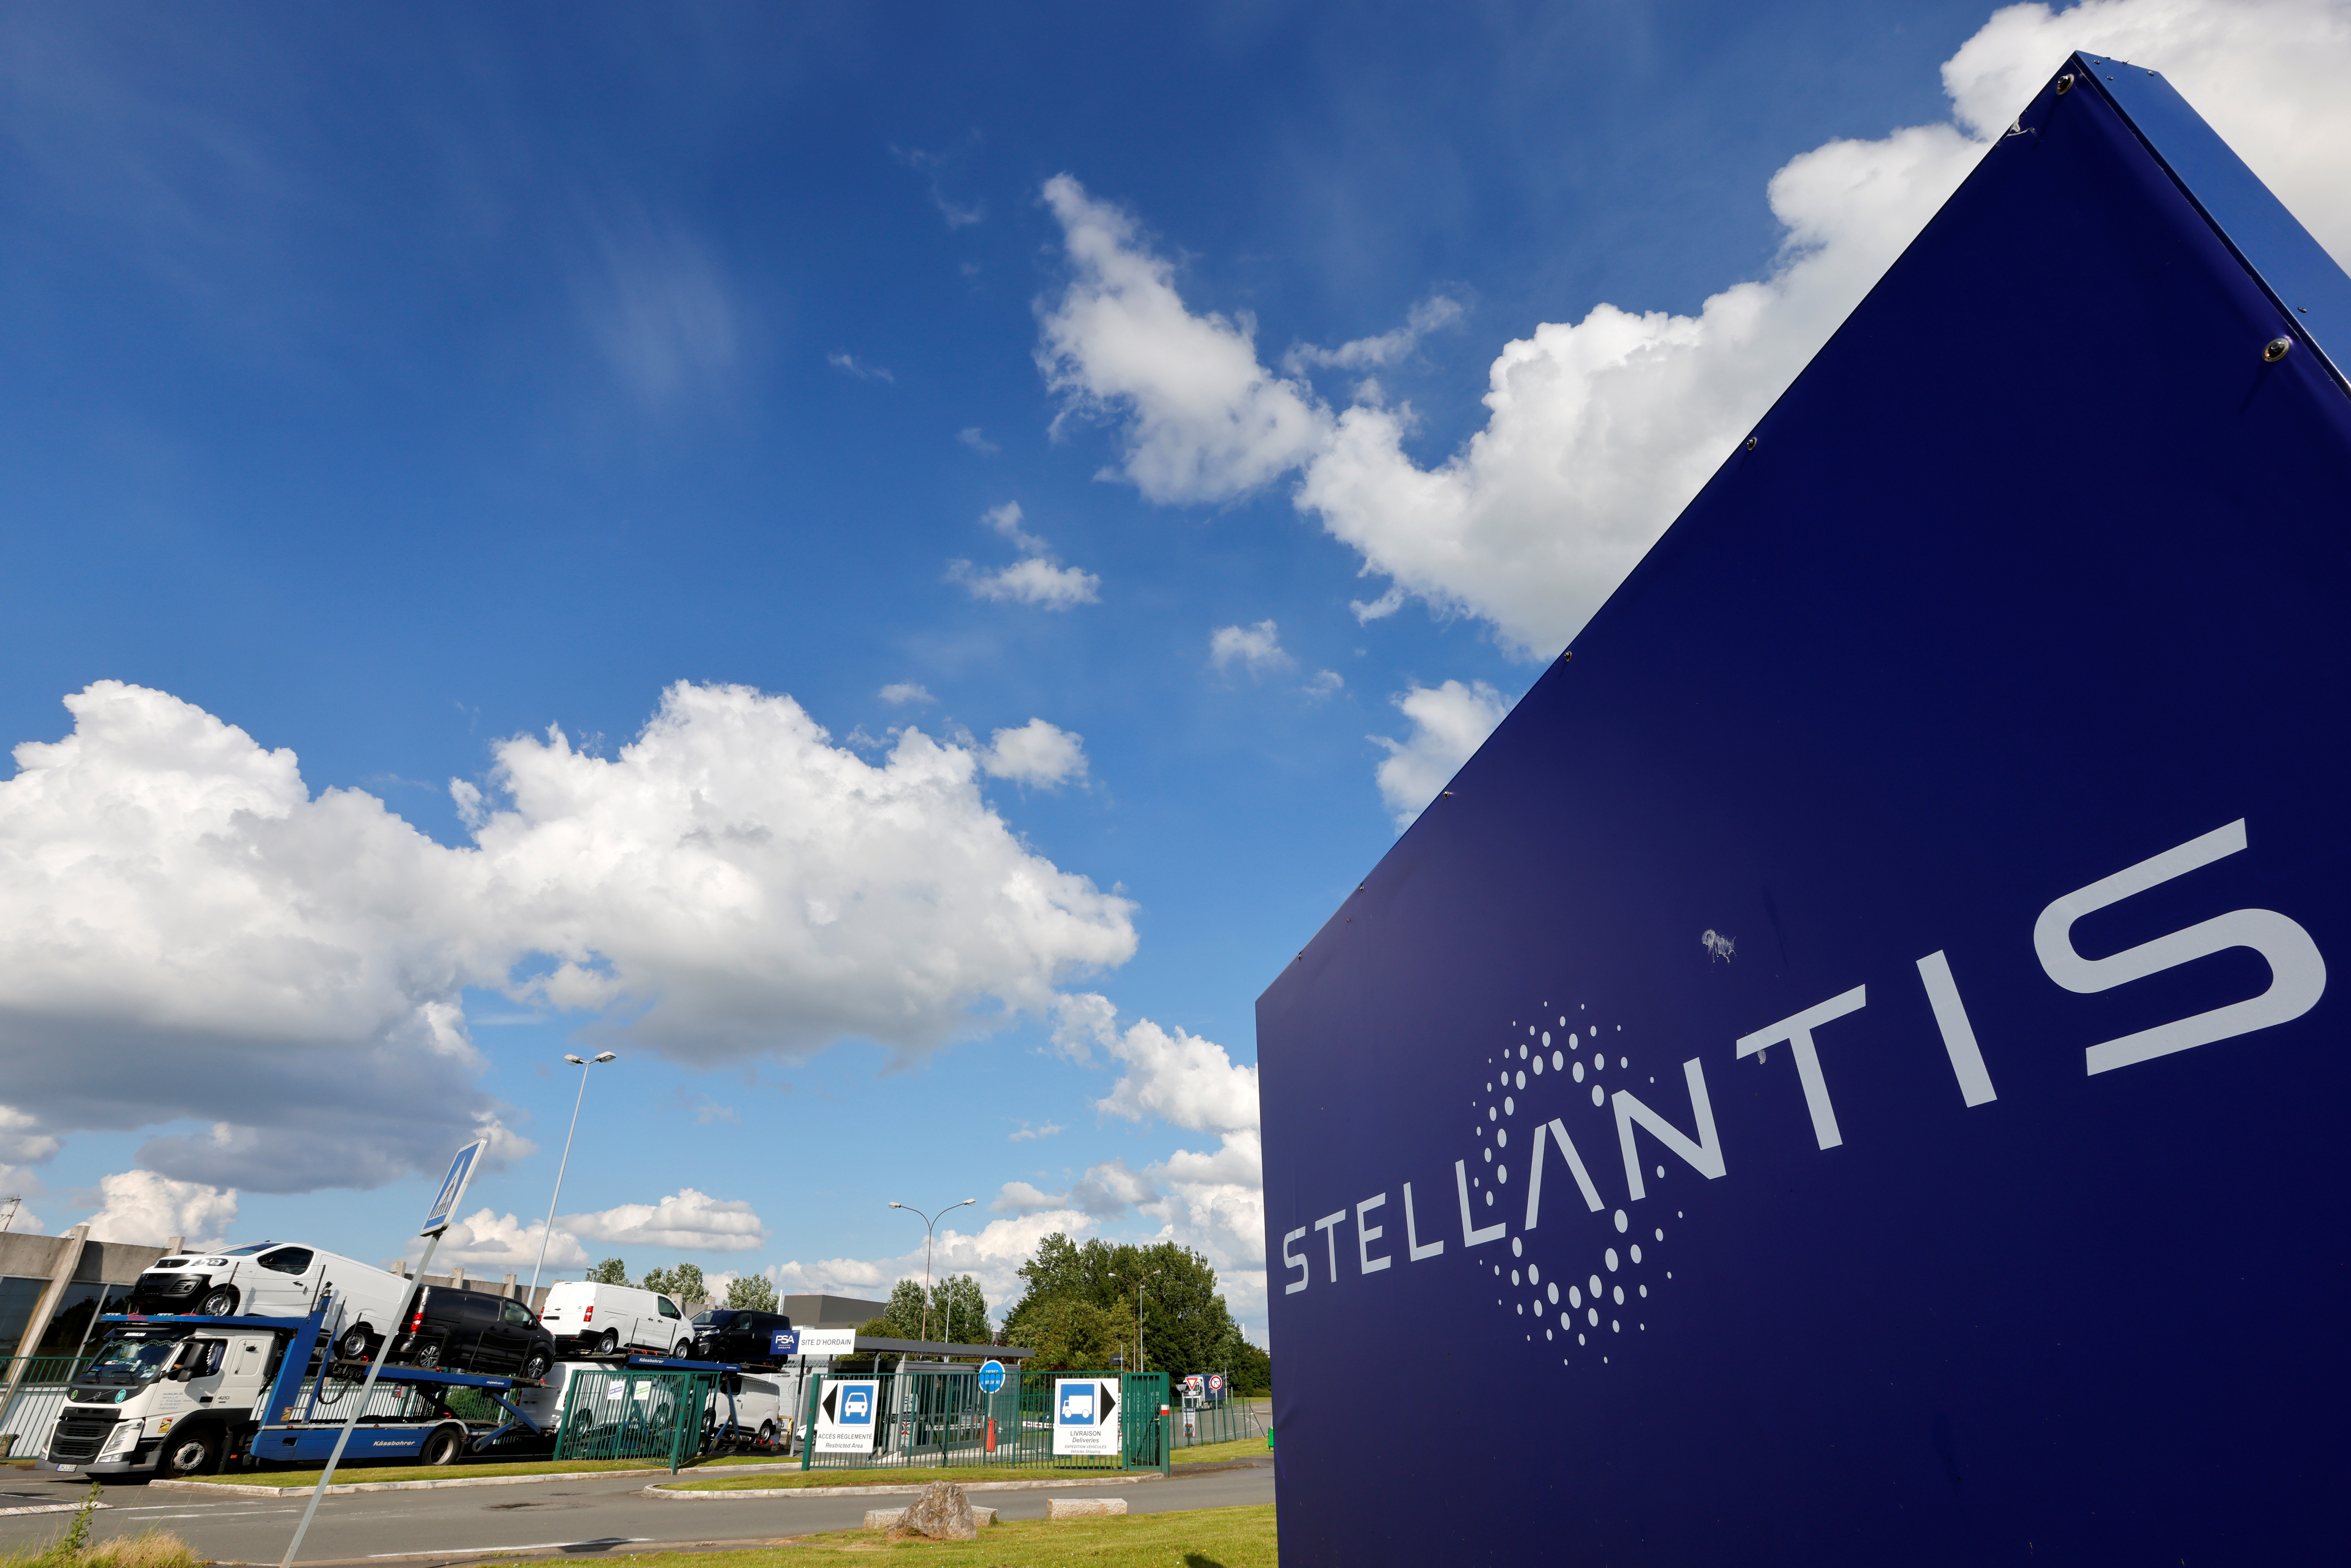 A view shows the logo of Stellantis at the entrance of the company's factory in Hordain, France, July 7, 2021. REUTERS/Pascal Rossignol